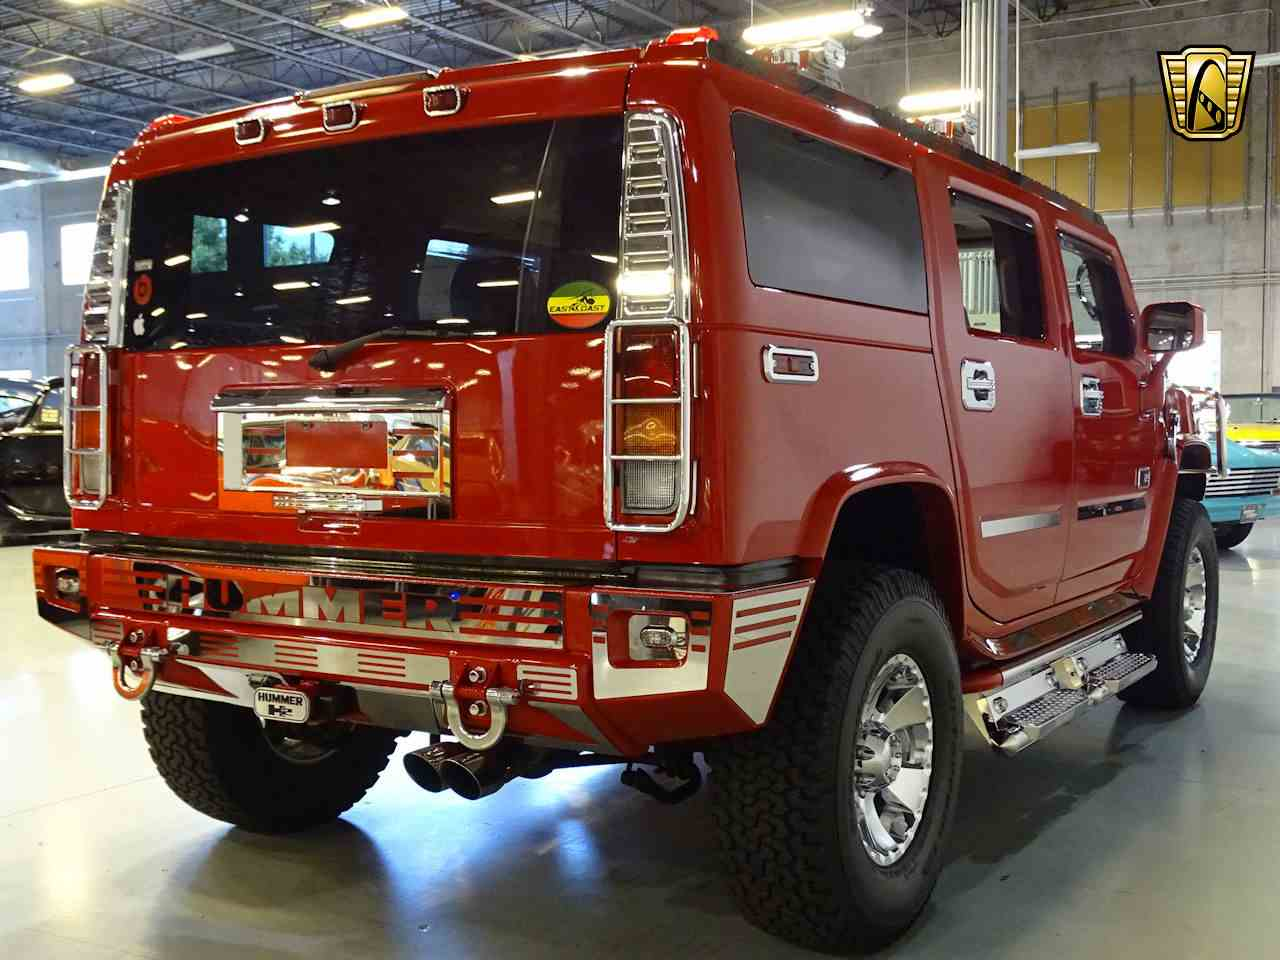 Large Picture of 2004 Hummer H2 located in Lake Mary Florida - $39,995.00 Offered by Gateway Classic Cars - Orlando - LWI8